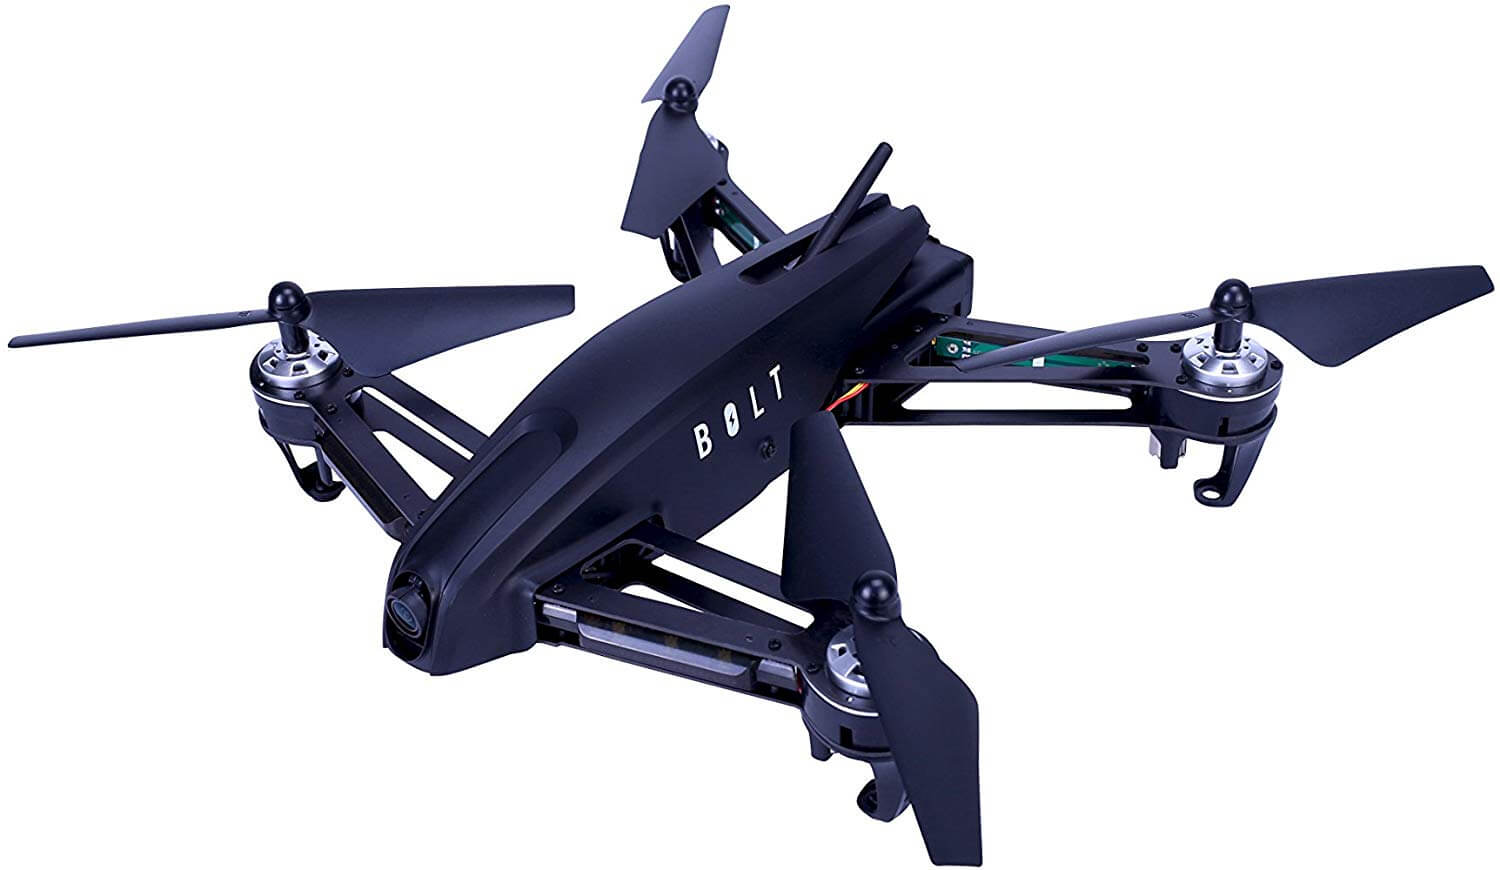 Bolt FPV Racing Drone Review - Best Drone for Racing under 200 bucks!